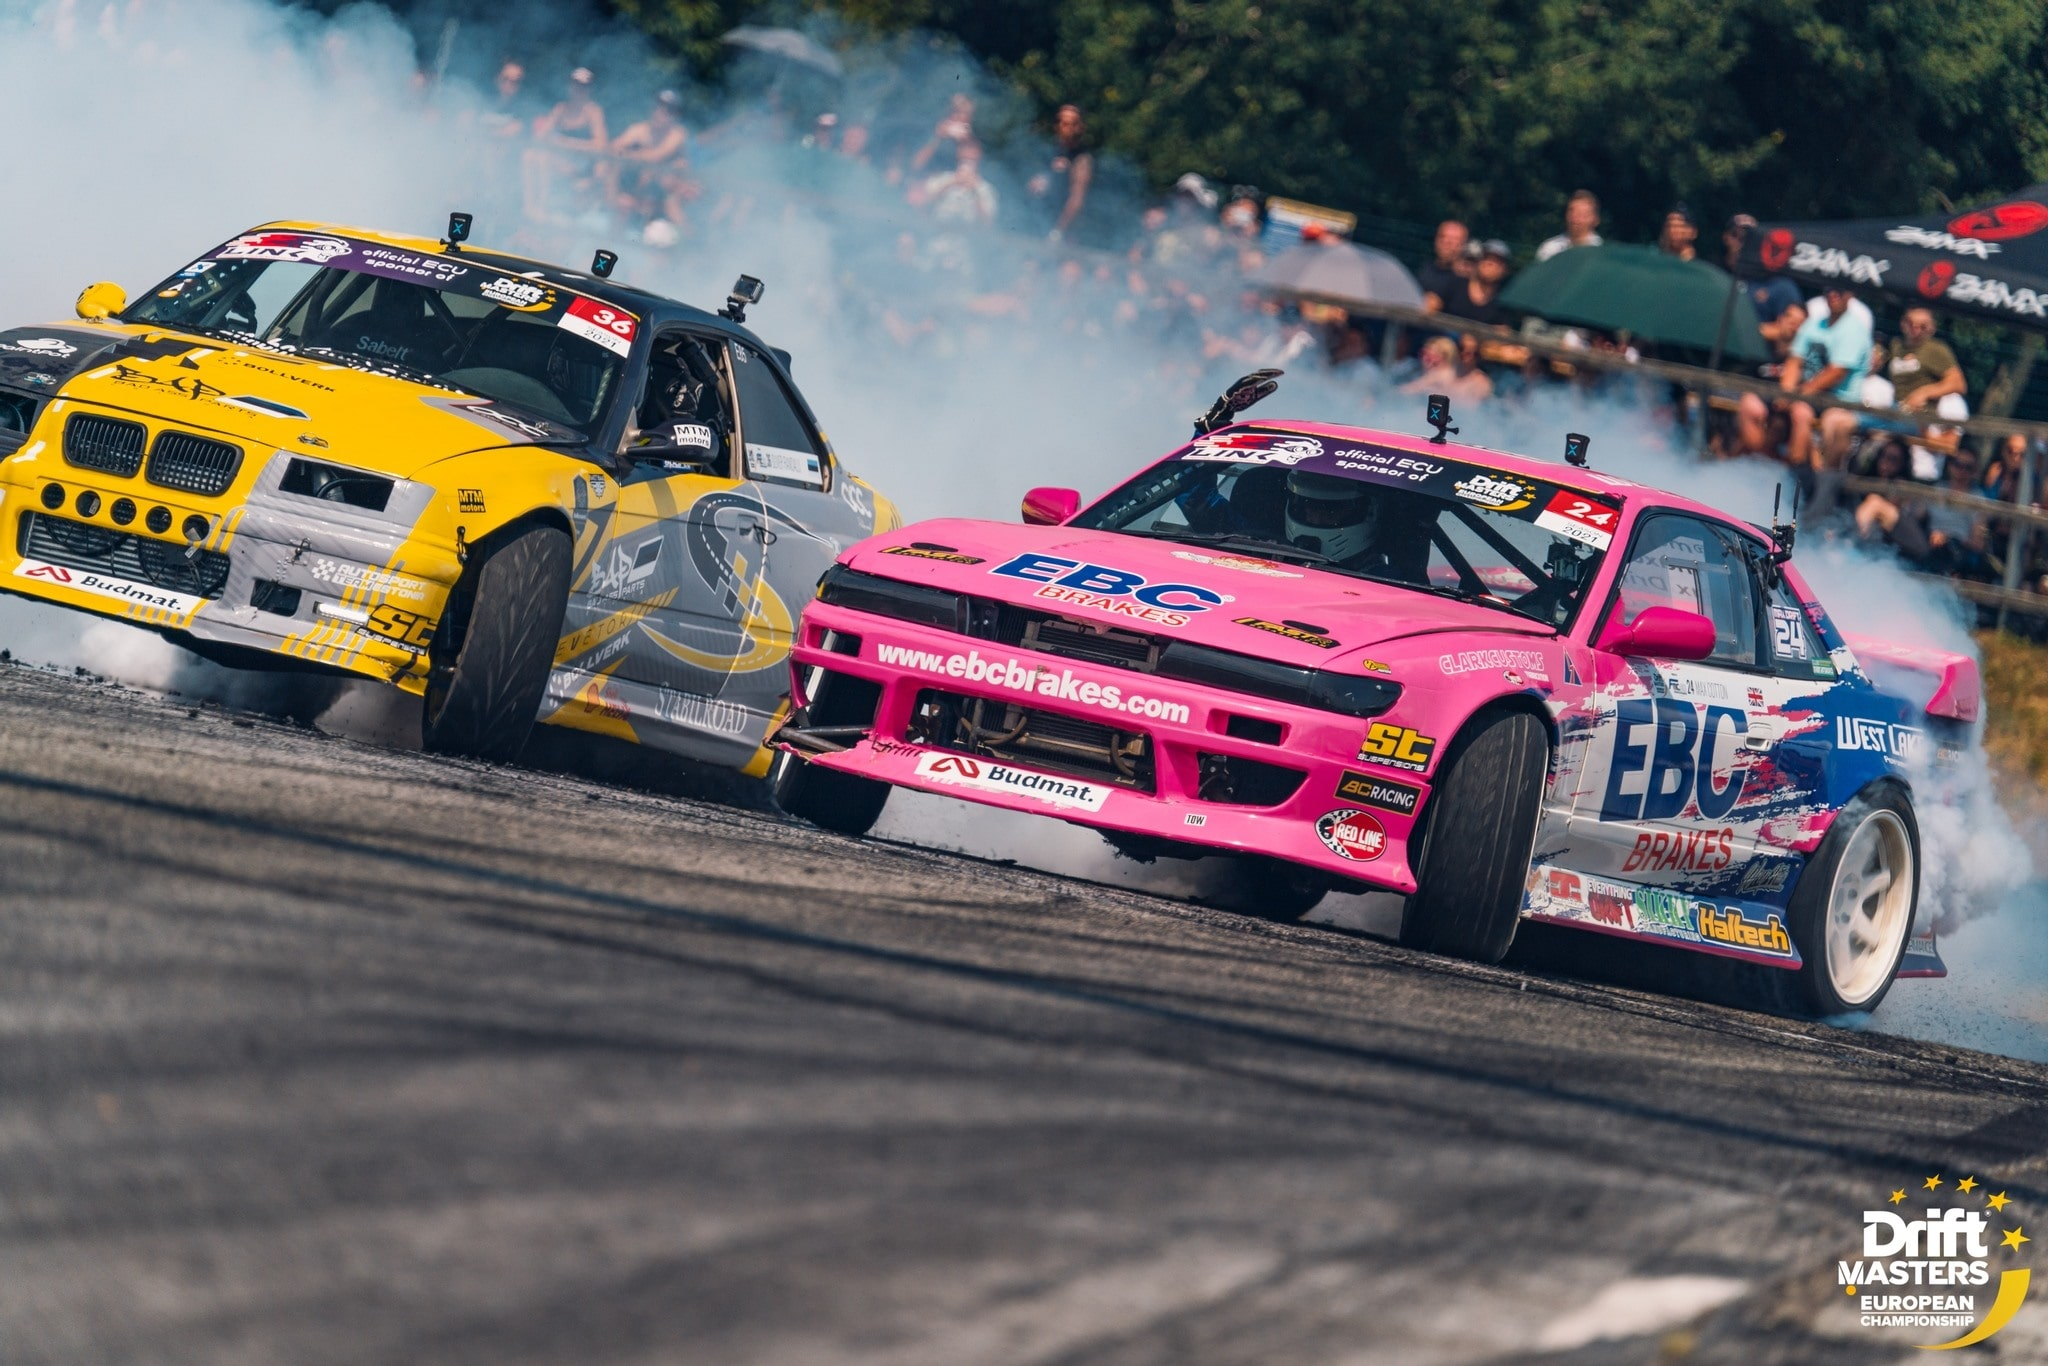 Race Report: Max Cotton Competes in First Round of Drift Masters European Championship